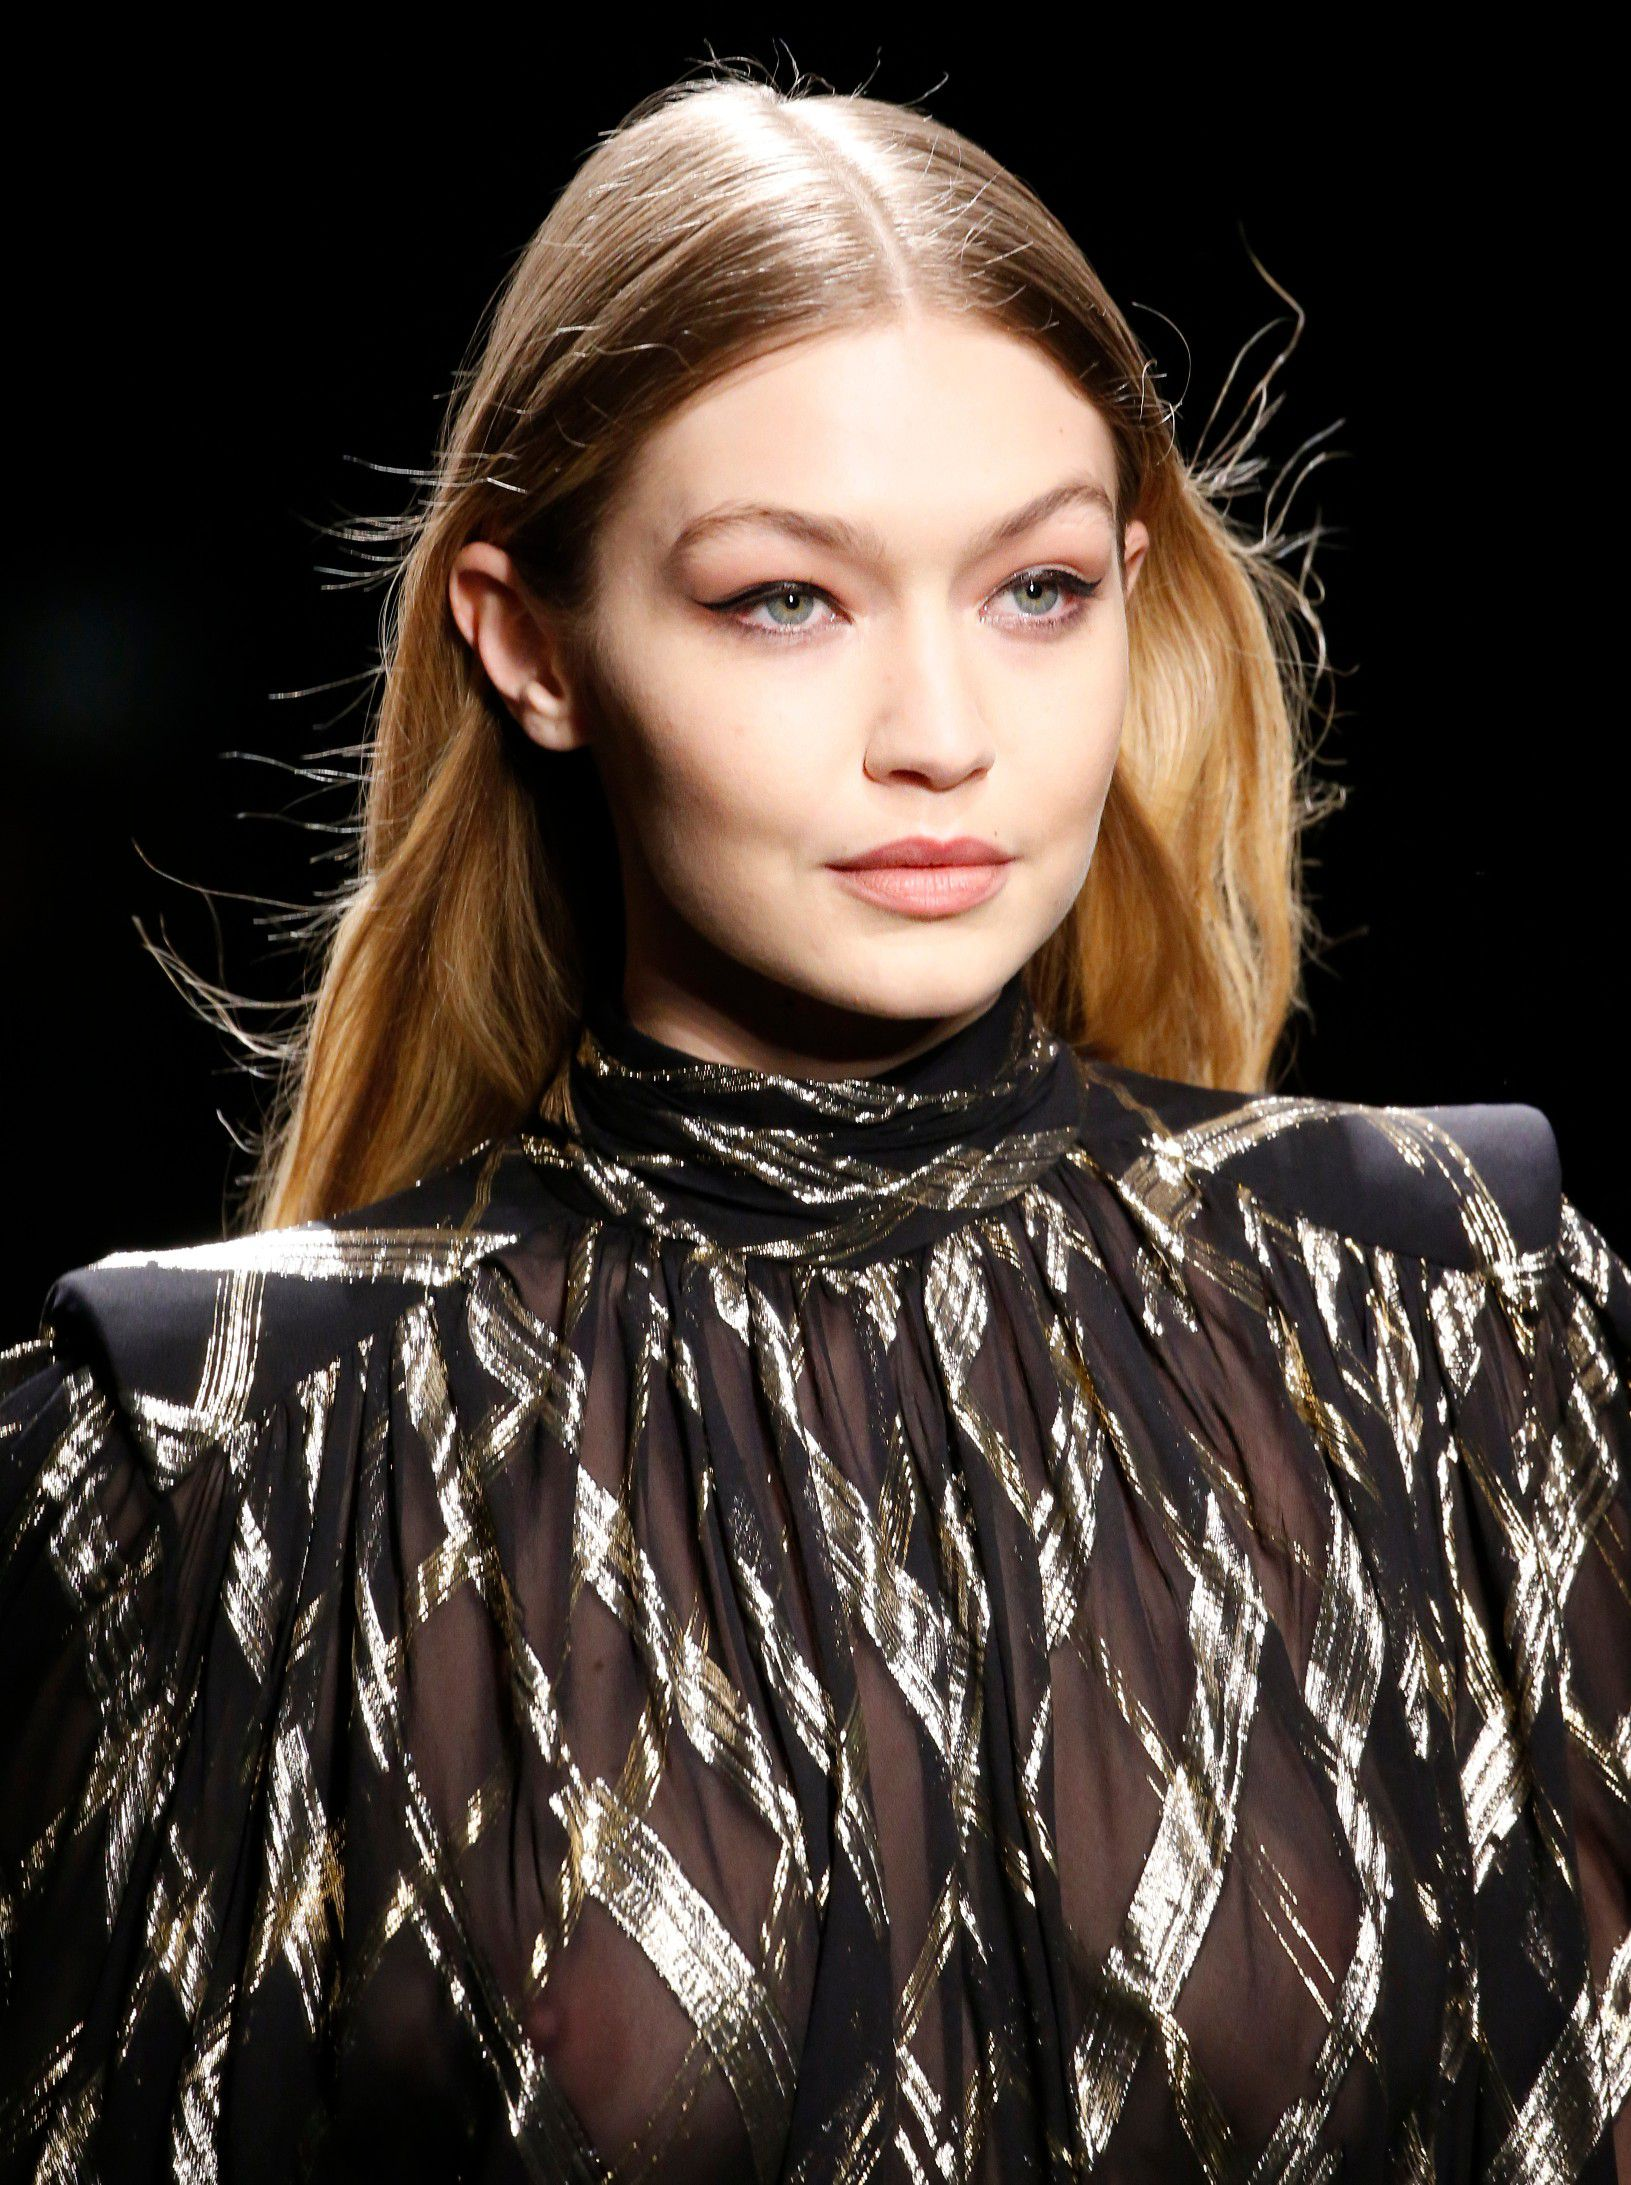 gigi-hadid-braless-see-thru-dress-at-milan-fashion-show-3760